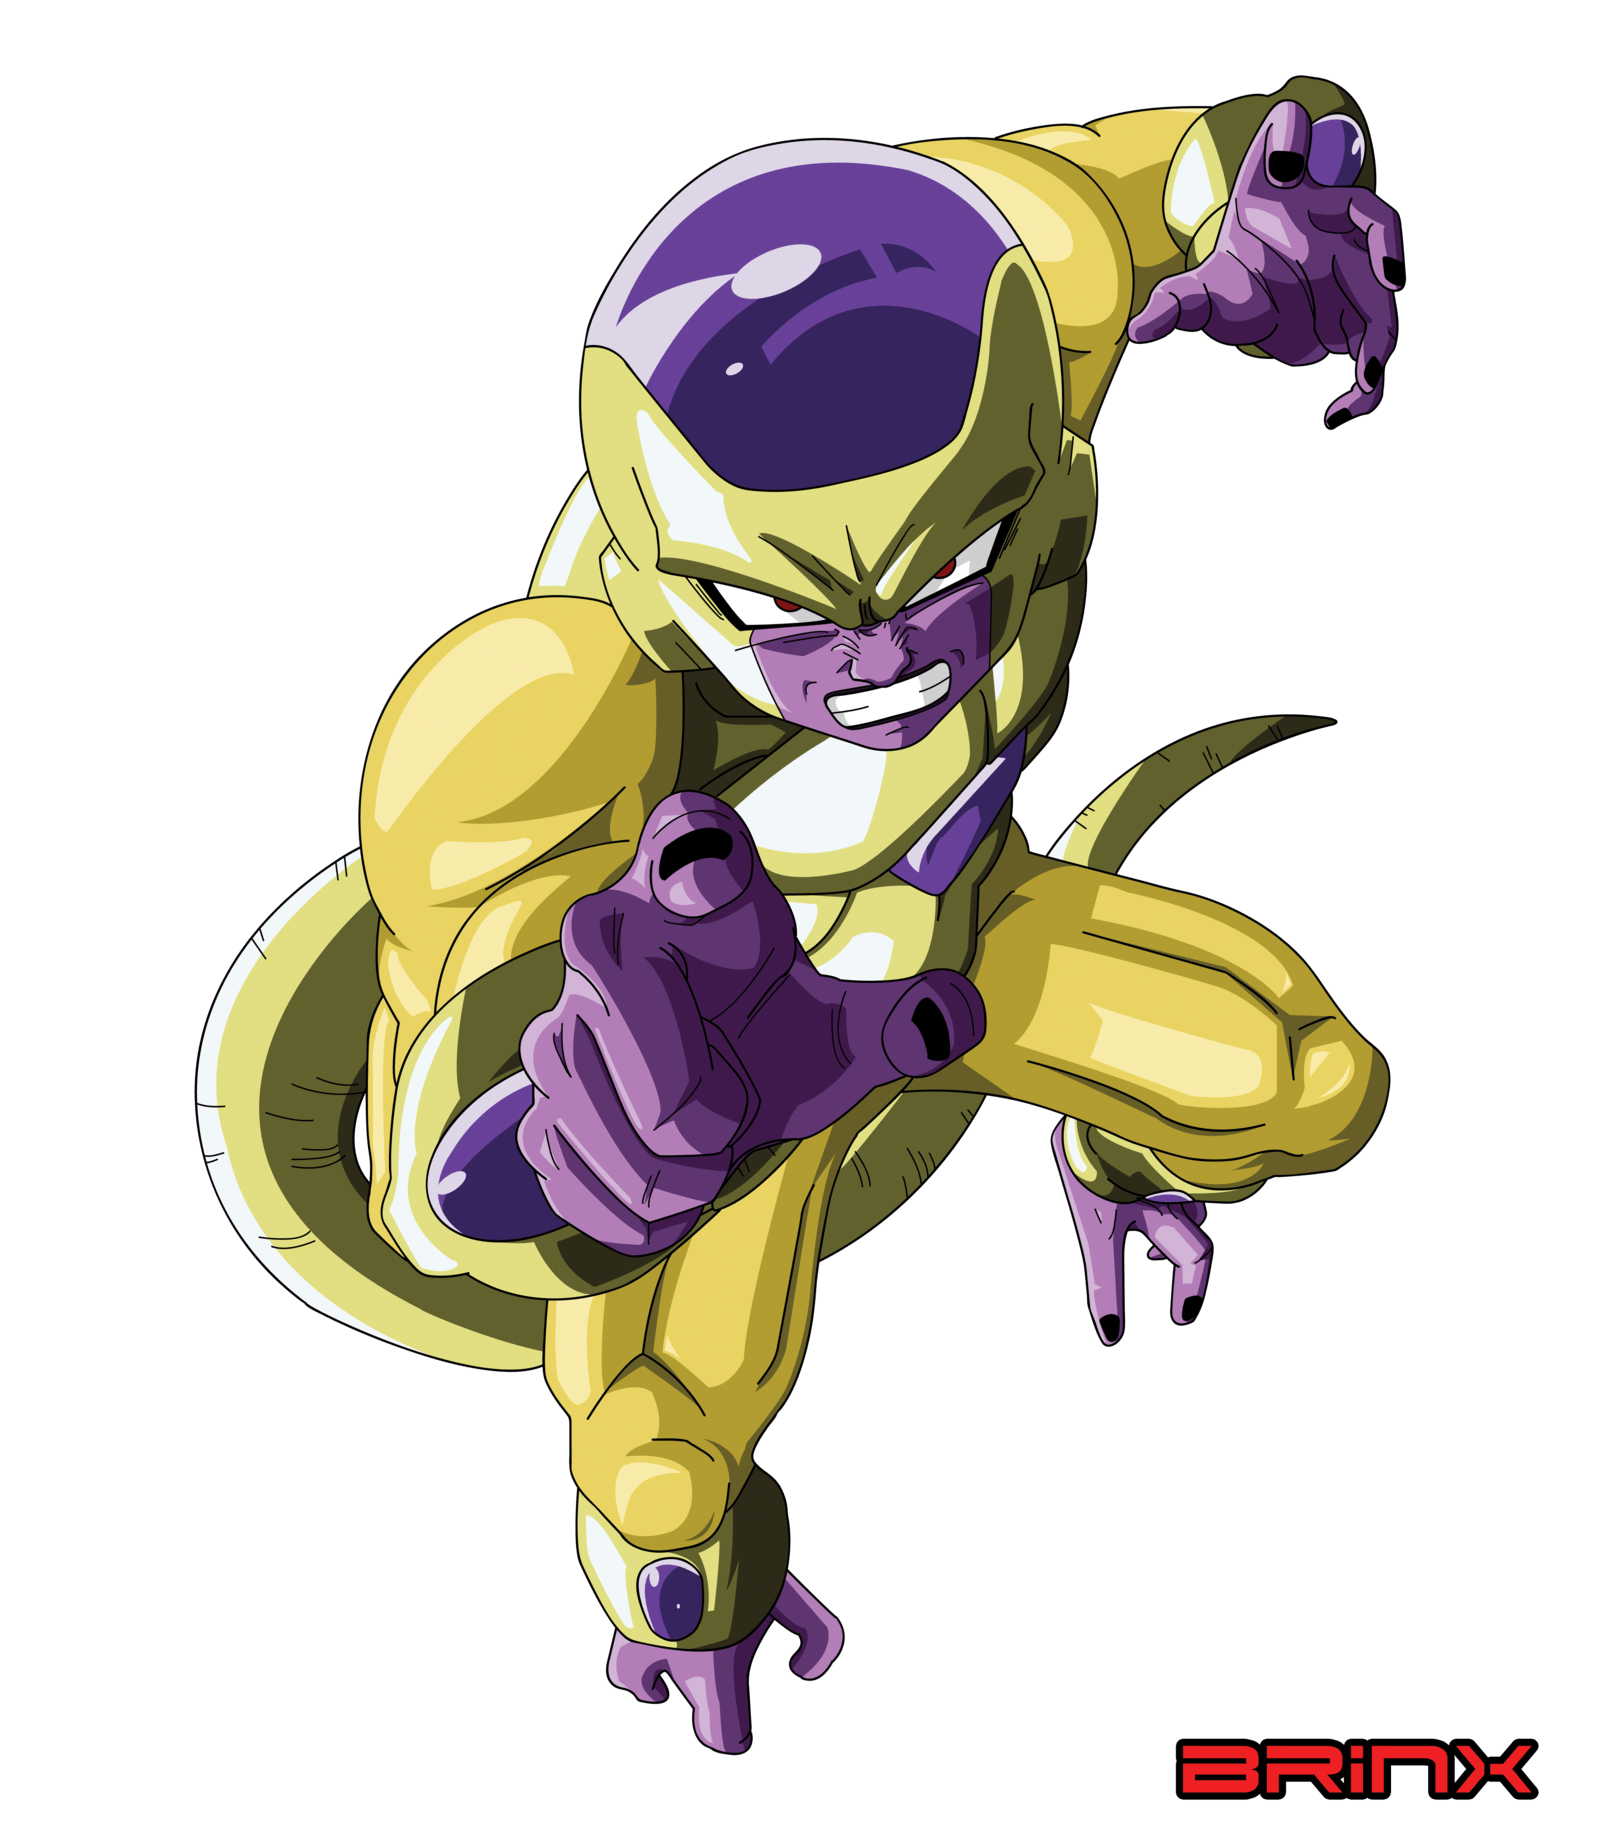 Joa Full Transformation Png: Golden Frieza Wallpapers